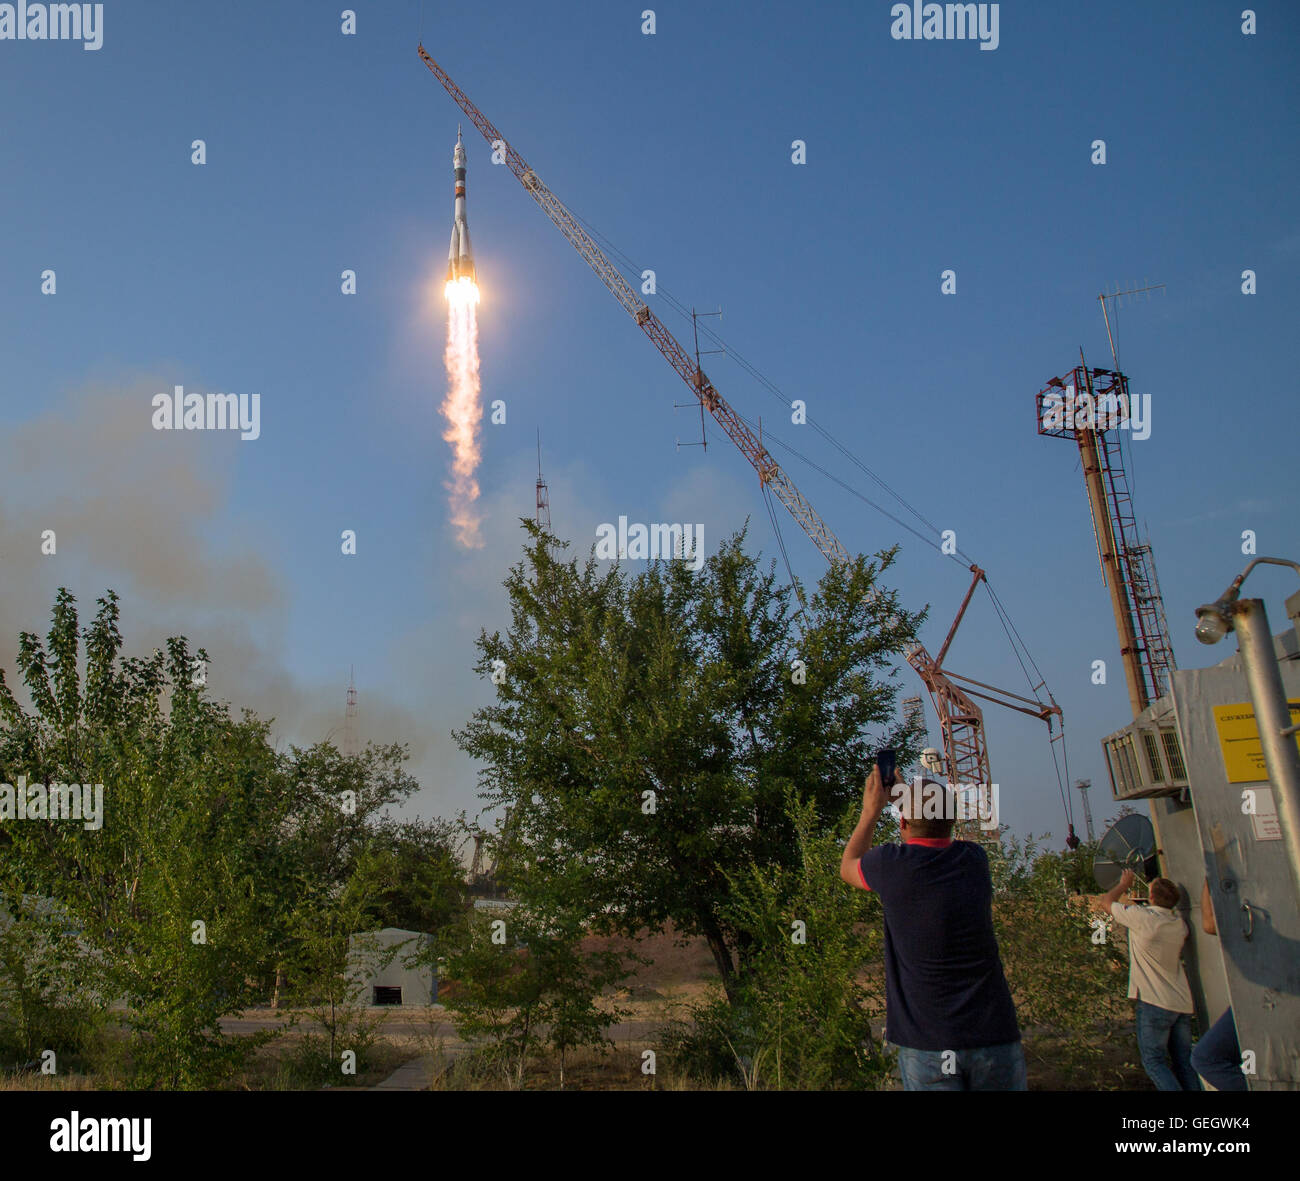 Expedition 48 Launch  07070010 - Stock Image